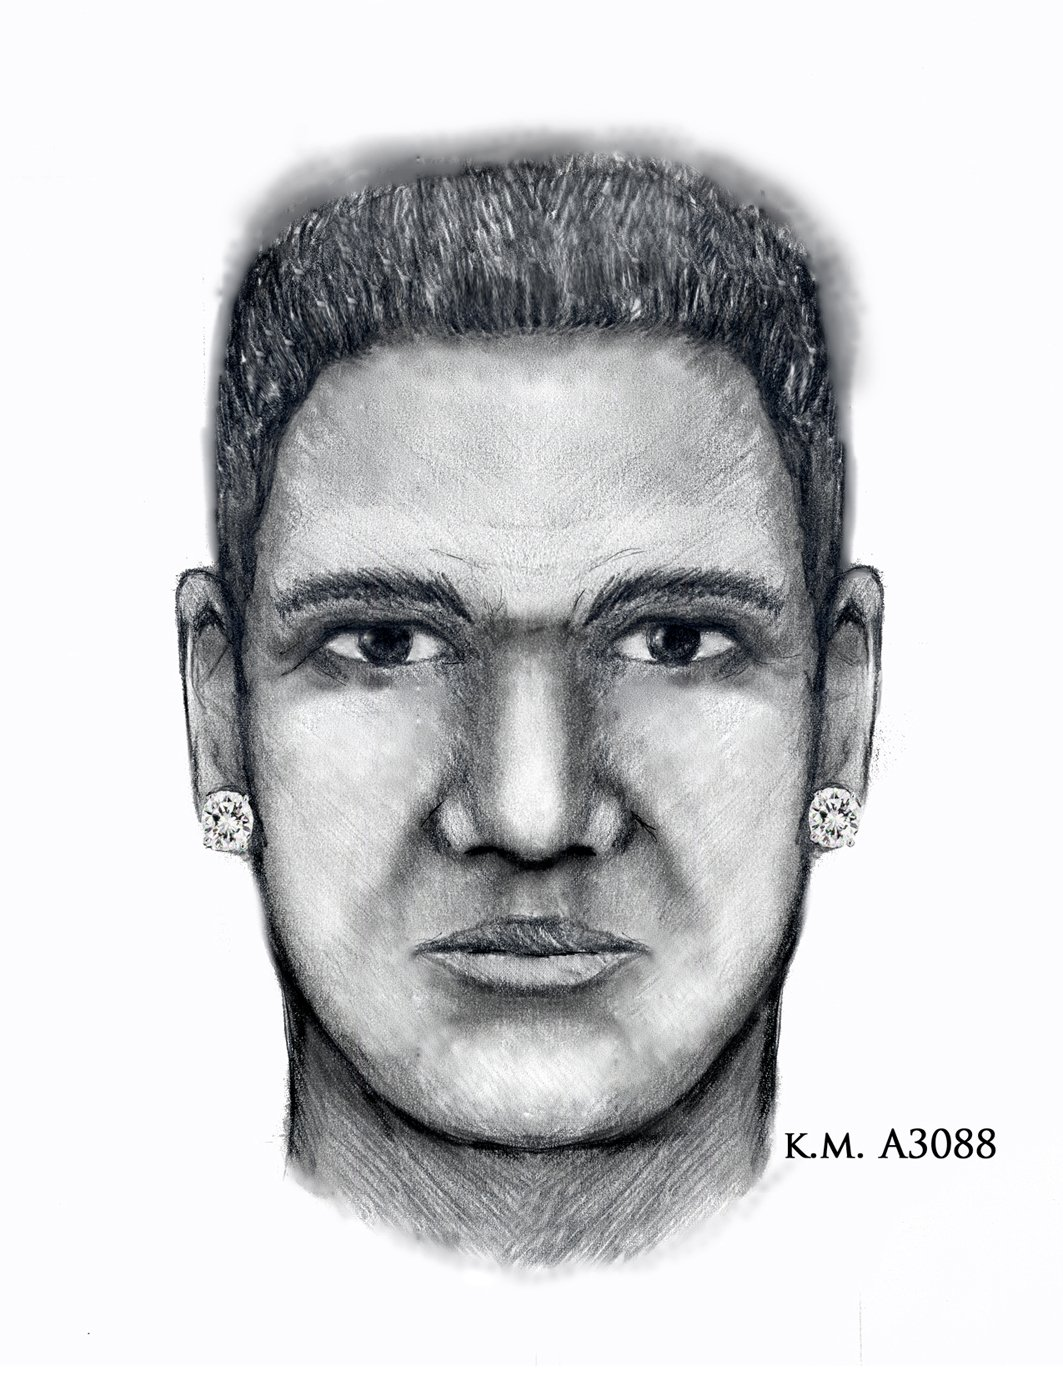 If you have information, call the Phoenix Police Department at 602-262-6141 or Silent Witness at 480-WITNESS. (Source: Phoenix Police Department)